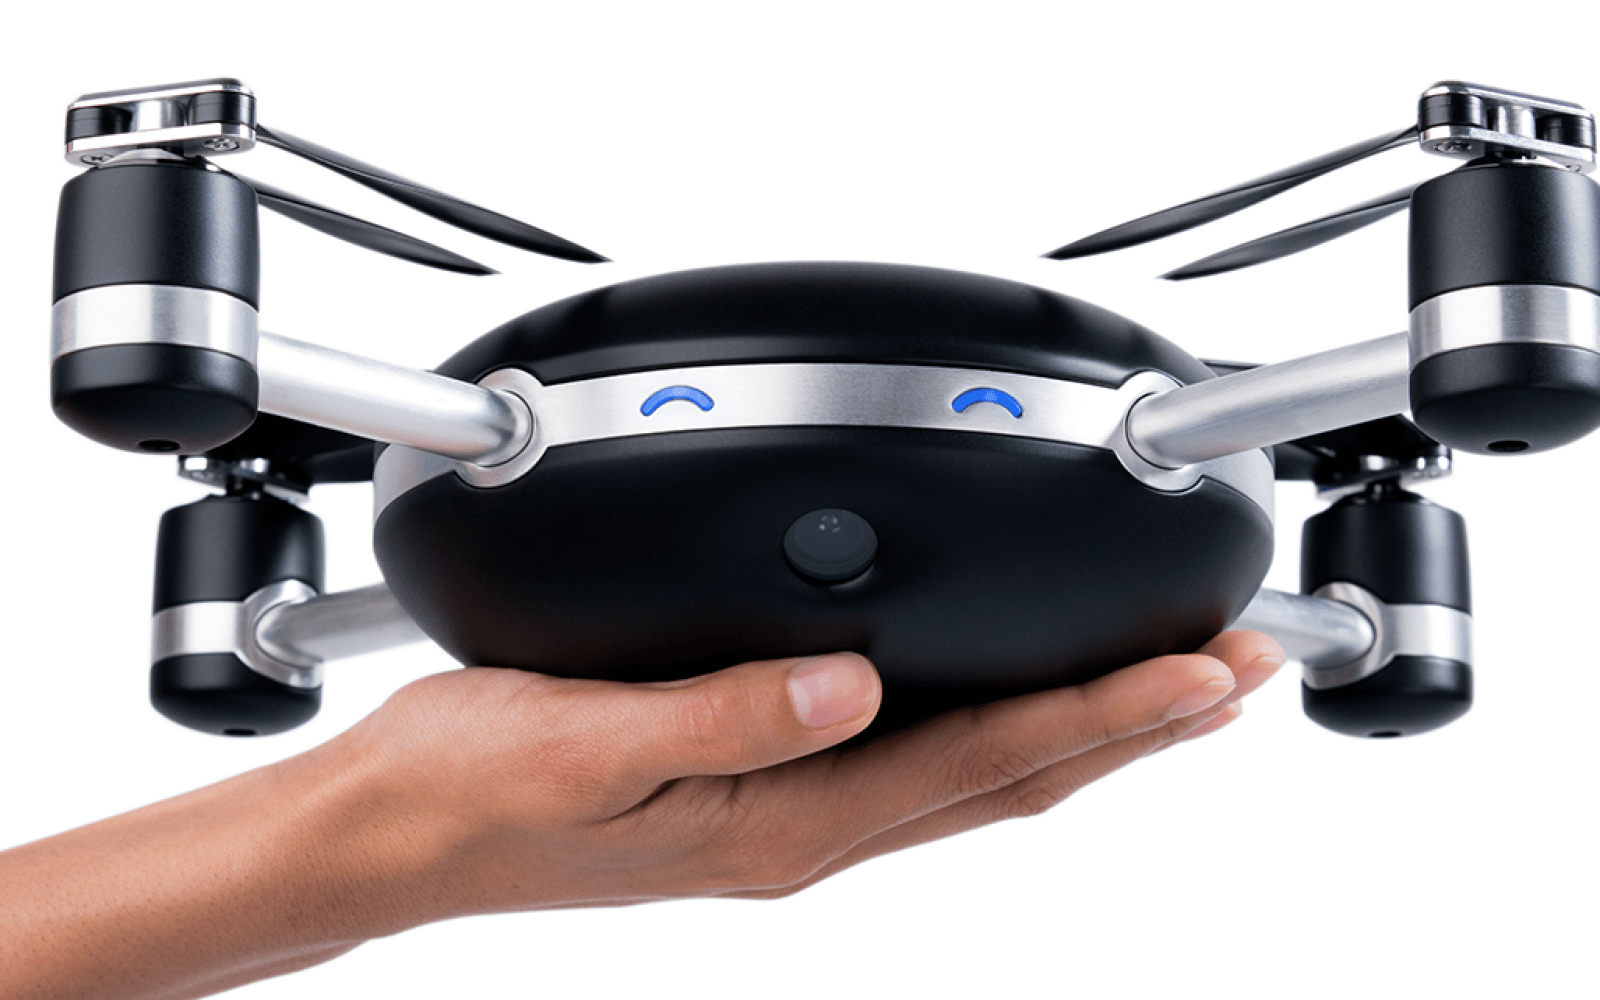 Just throw the Lily Camera drone in the air and it will automatically record your movements in 1080p